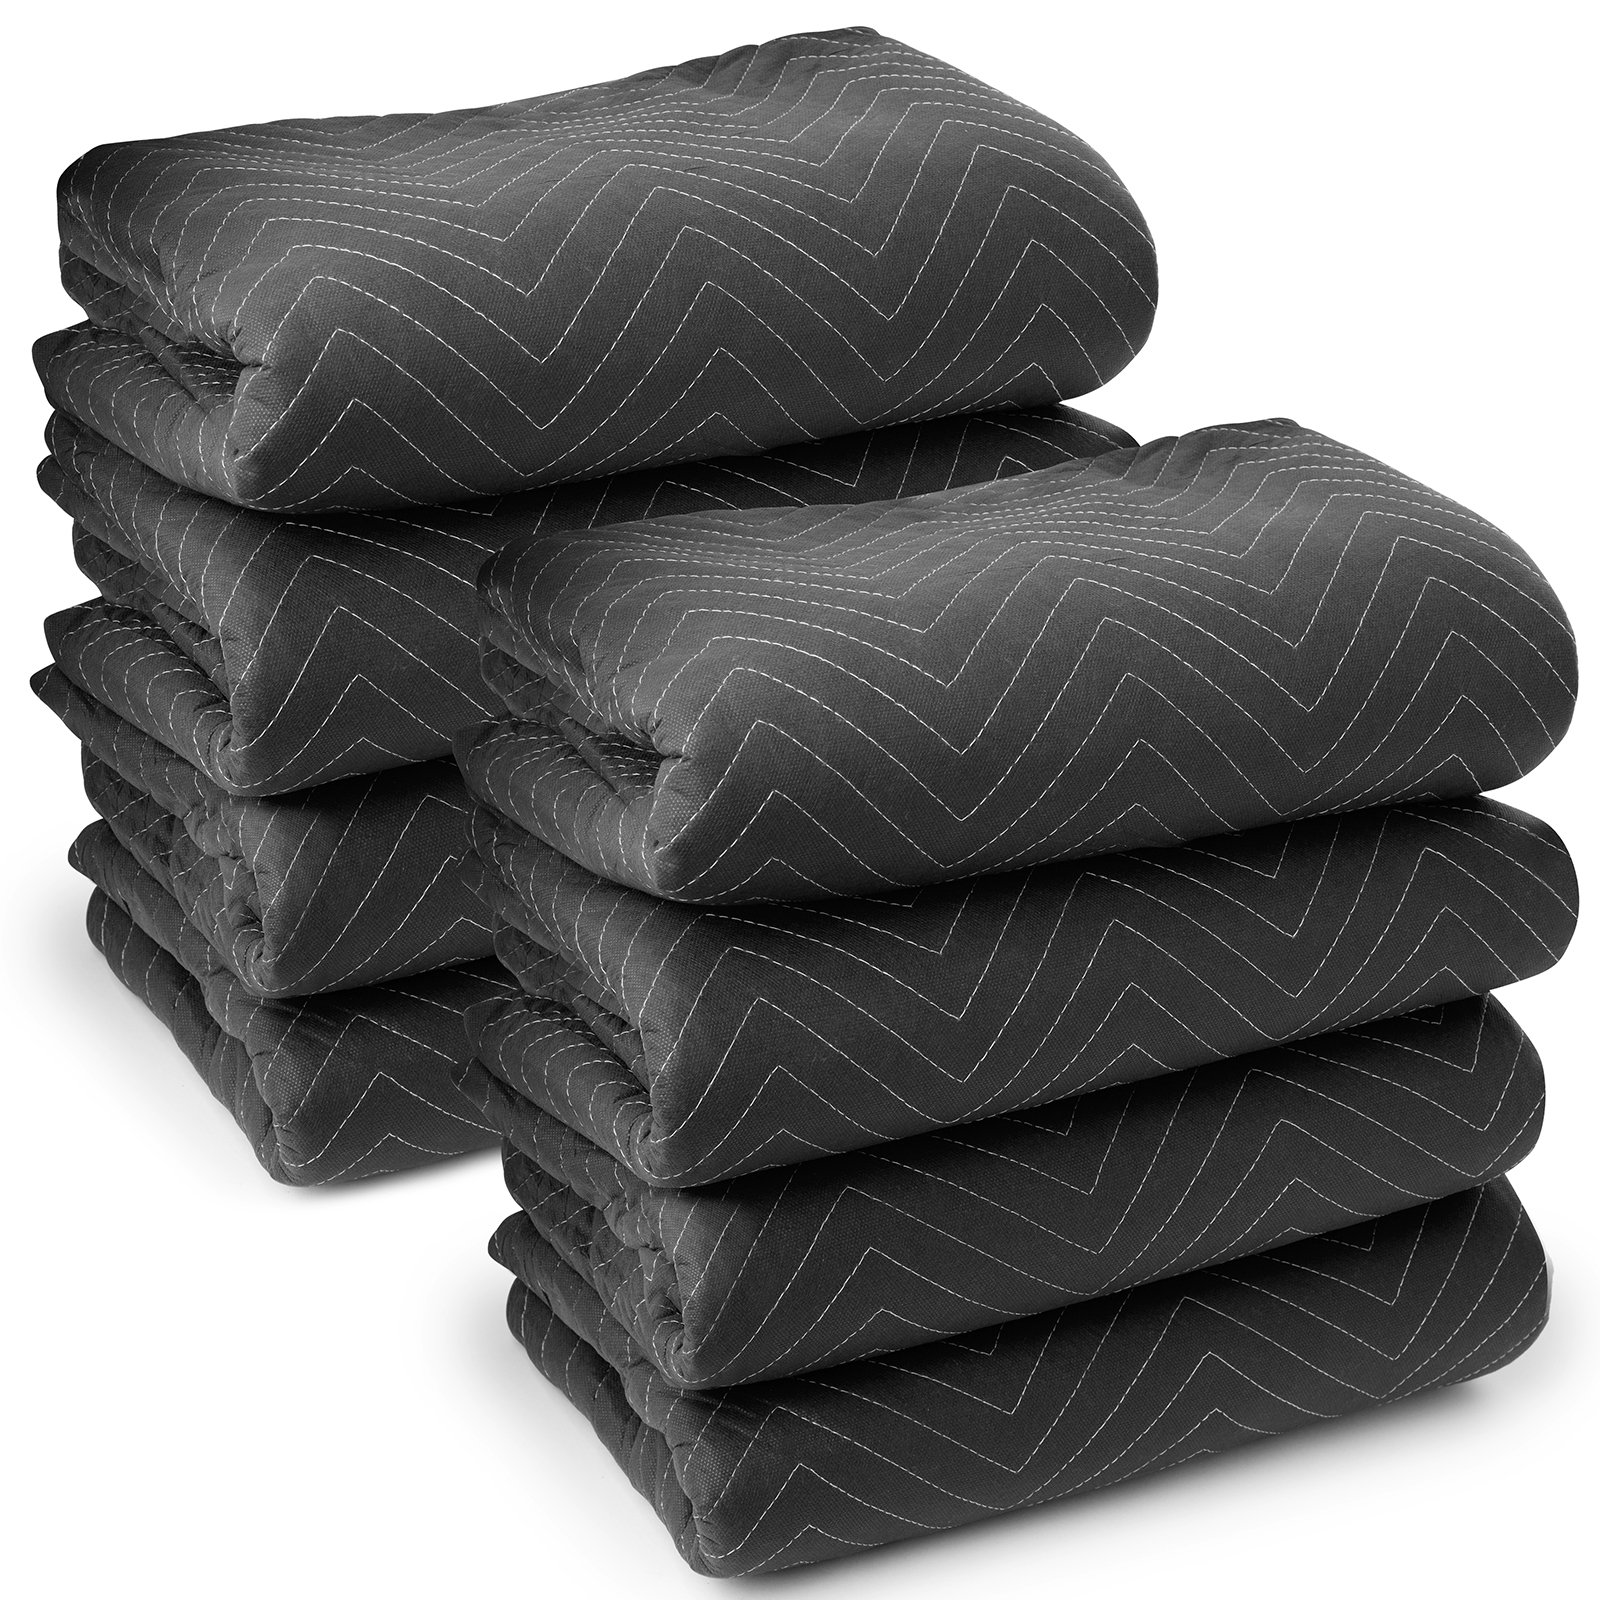 Sure-Max 8 Moving & Packing Blankets - Ultra Thick Pro - 80'' x 72'' (65 lb/dz weight) - Professional Quilted Shipping Furniture Pads Black